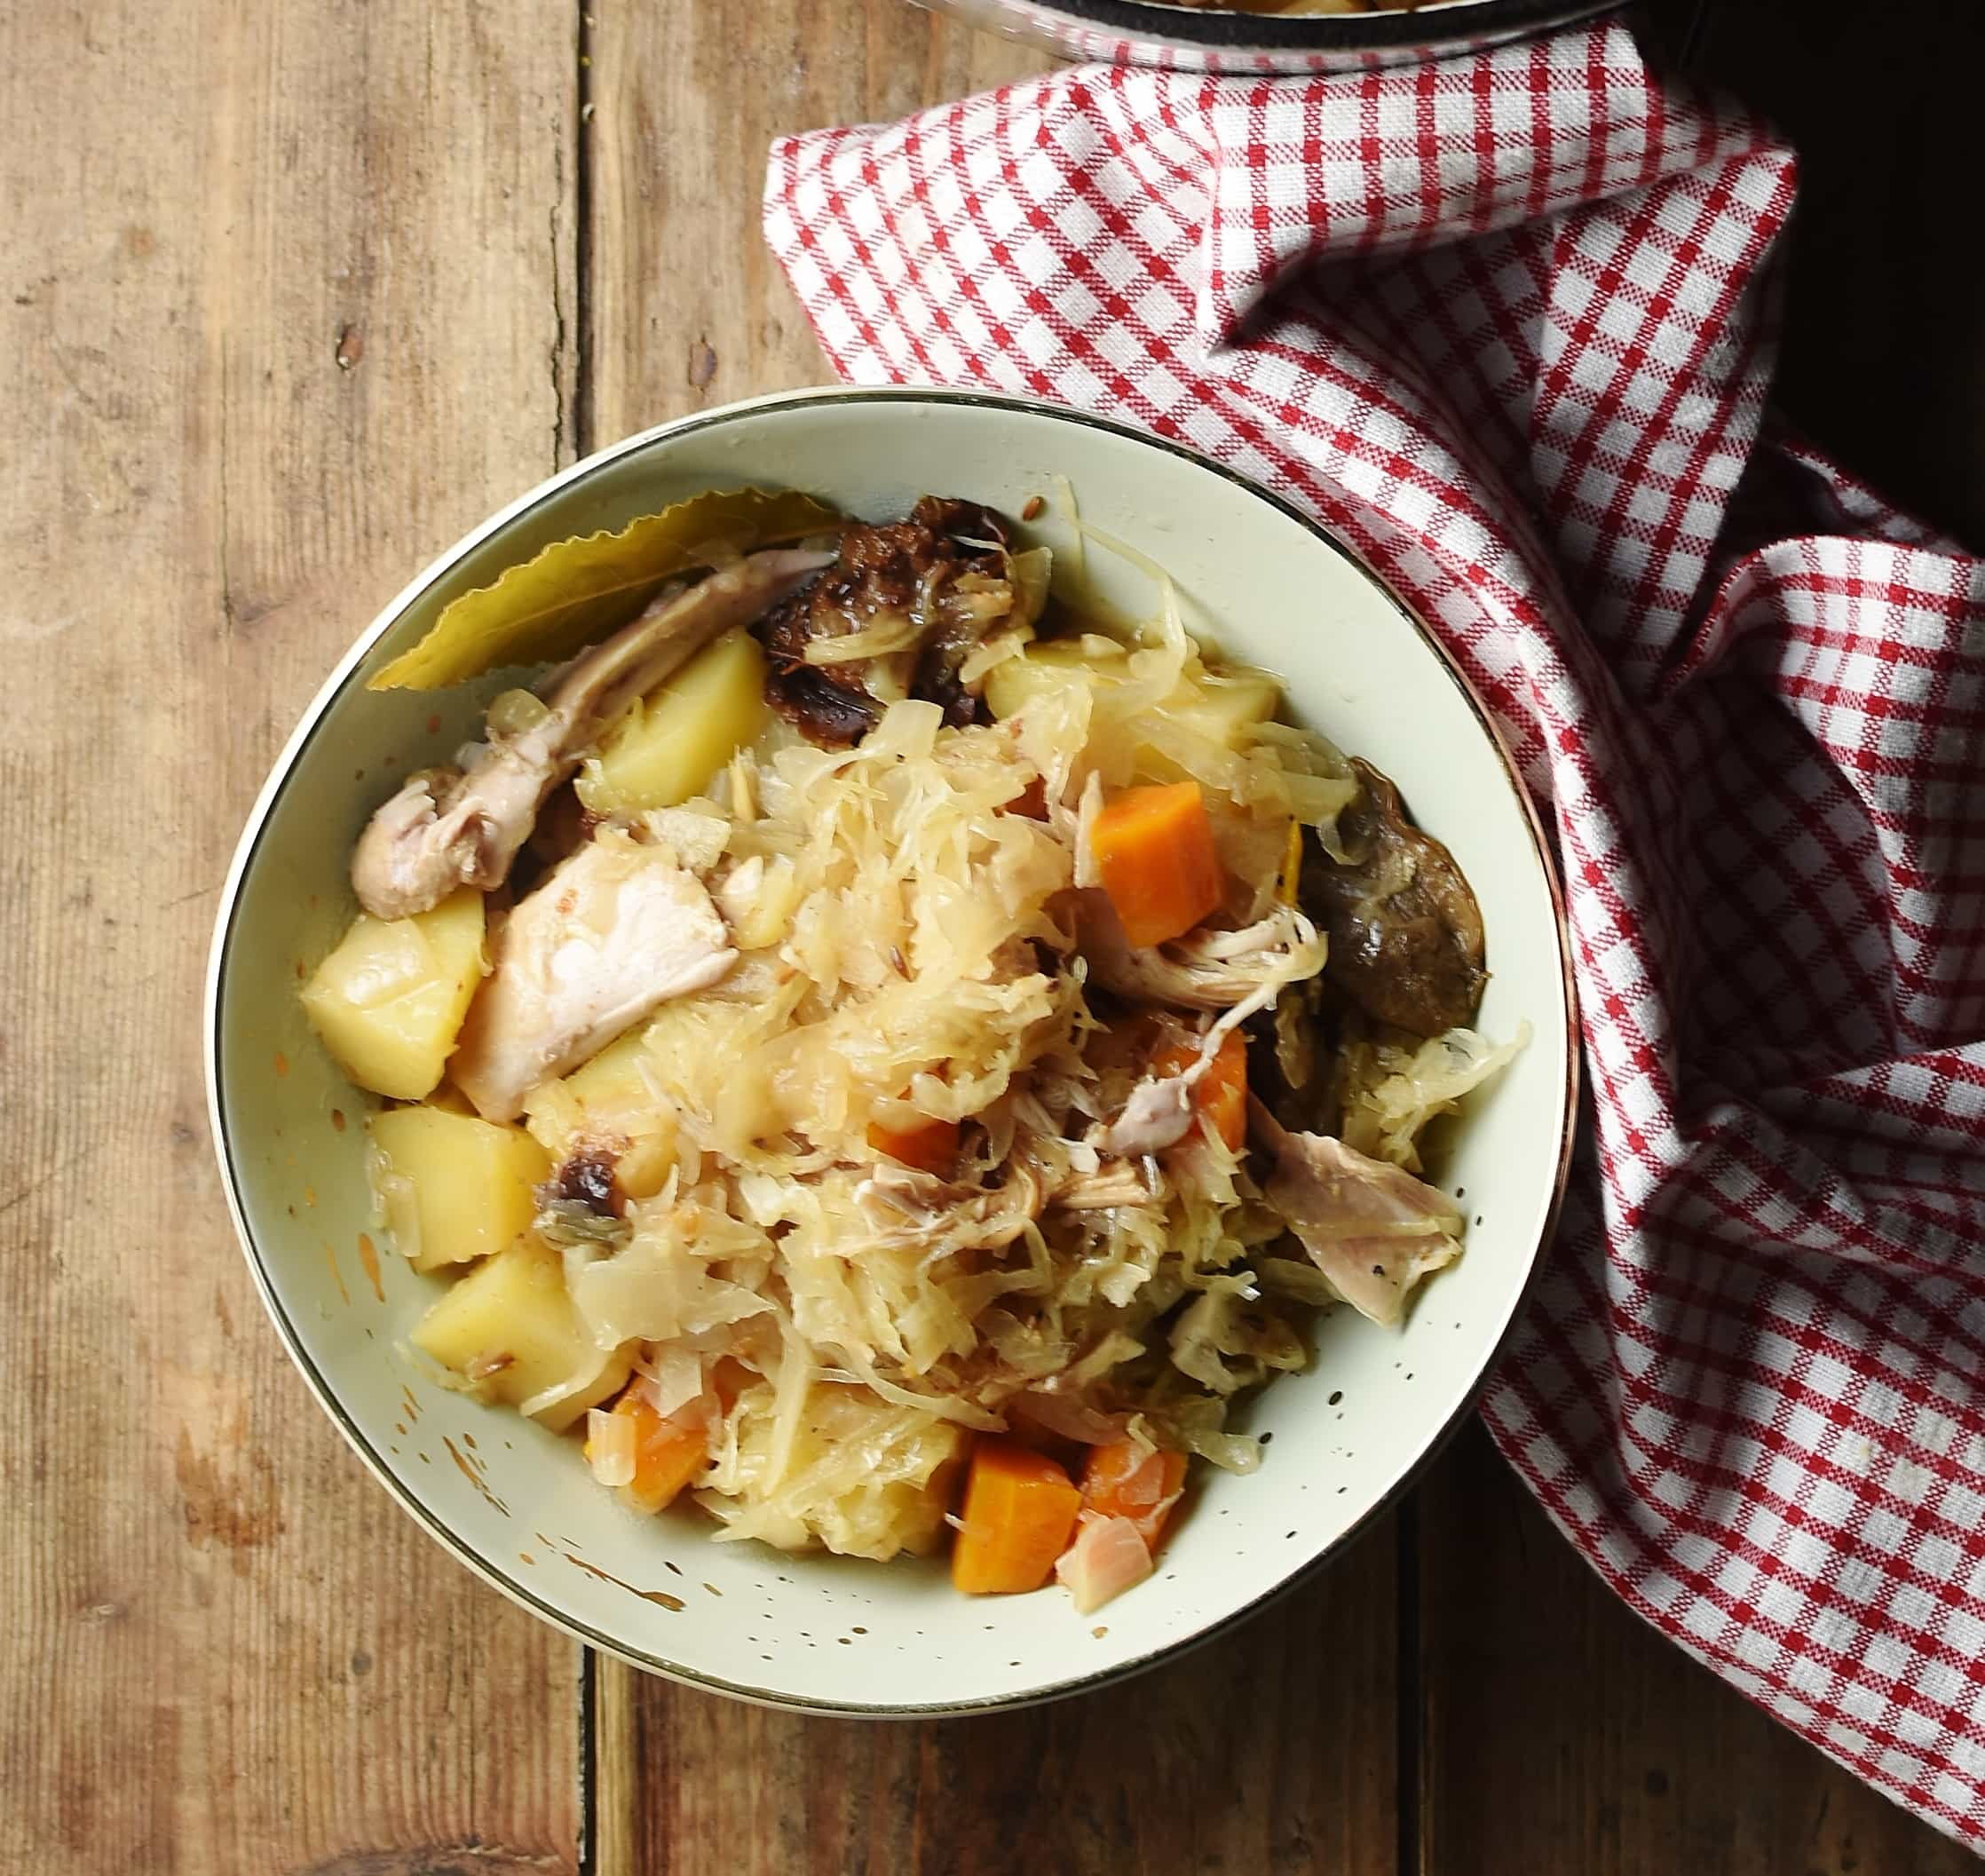 Sauerkraut, chicken, potato, carrot stew in green bowl with red-and-white checkered cloth to the right.